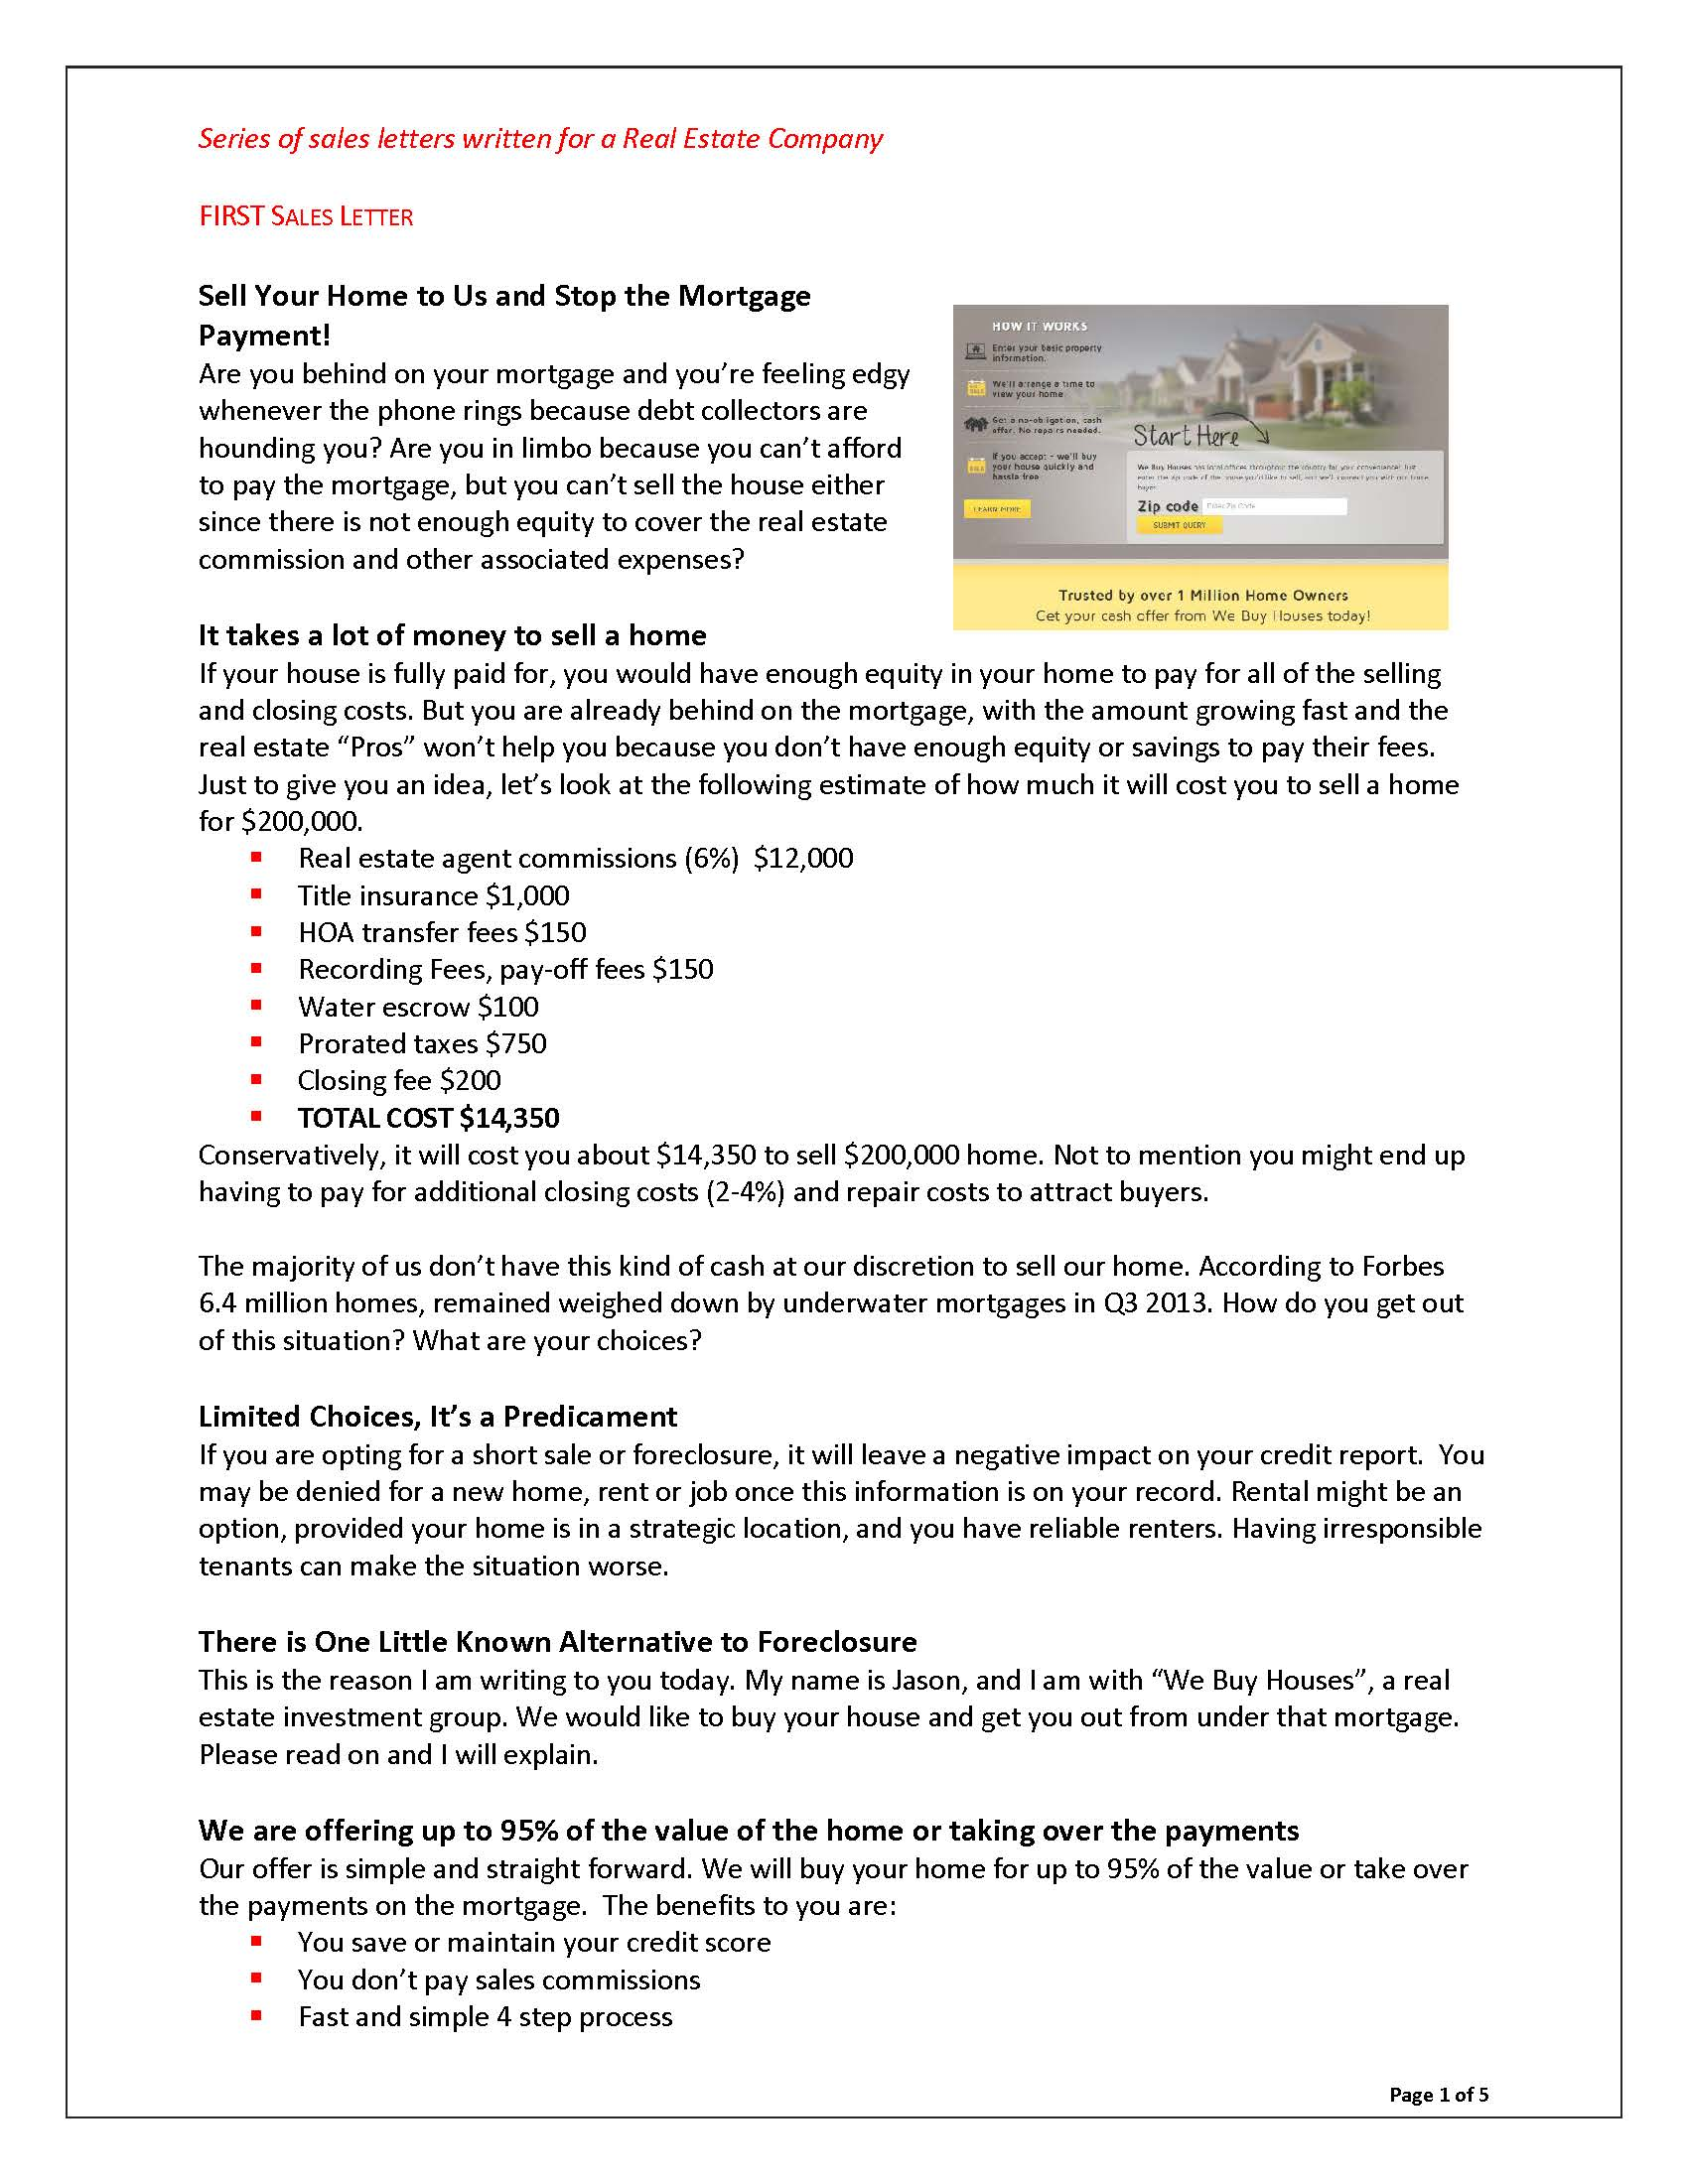 Sales Letter Series - Real Estate Co._Page_1